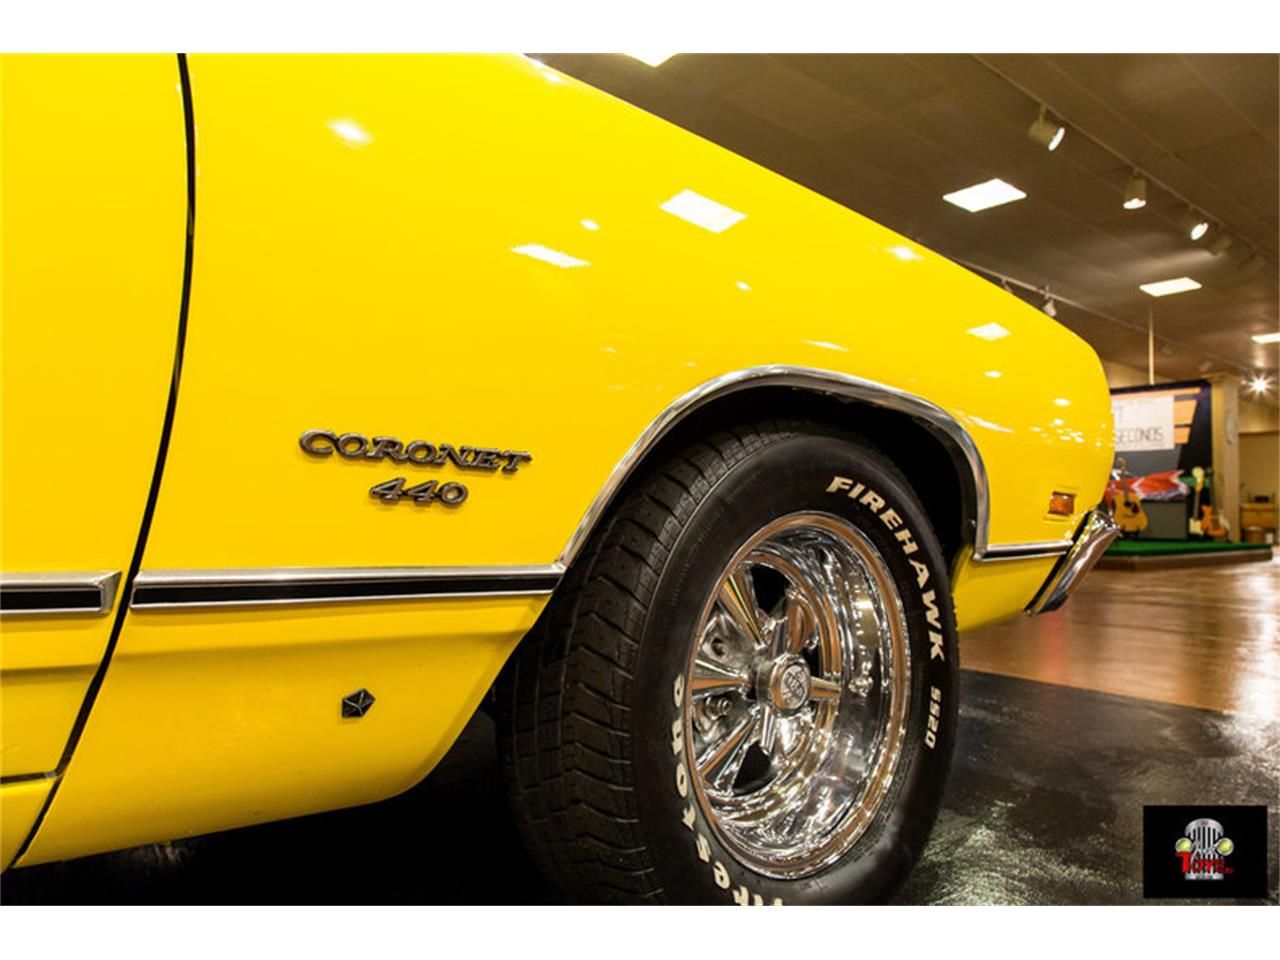 Large Picture of Classic '69 Dodge Coronet 440 located in Orlando Florida - $29,995.00 - LSNA